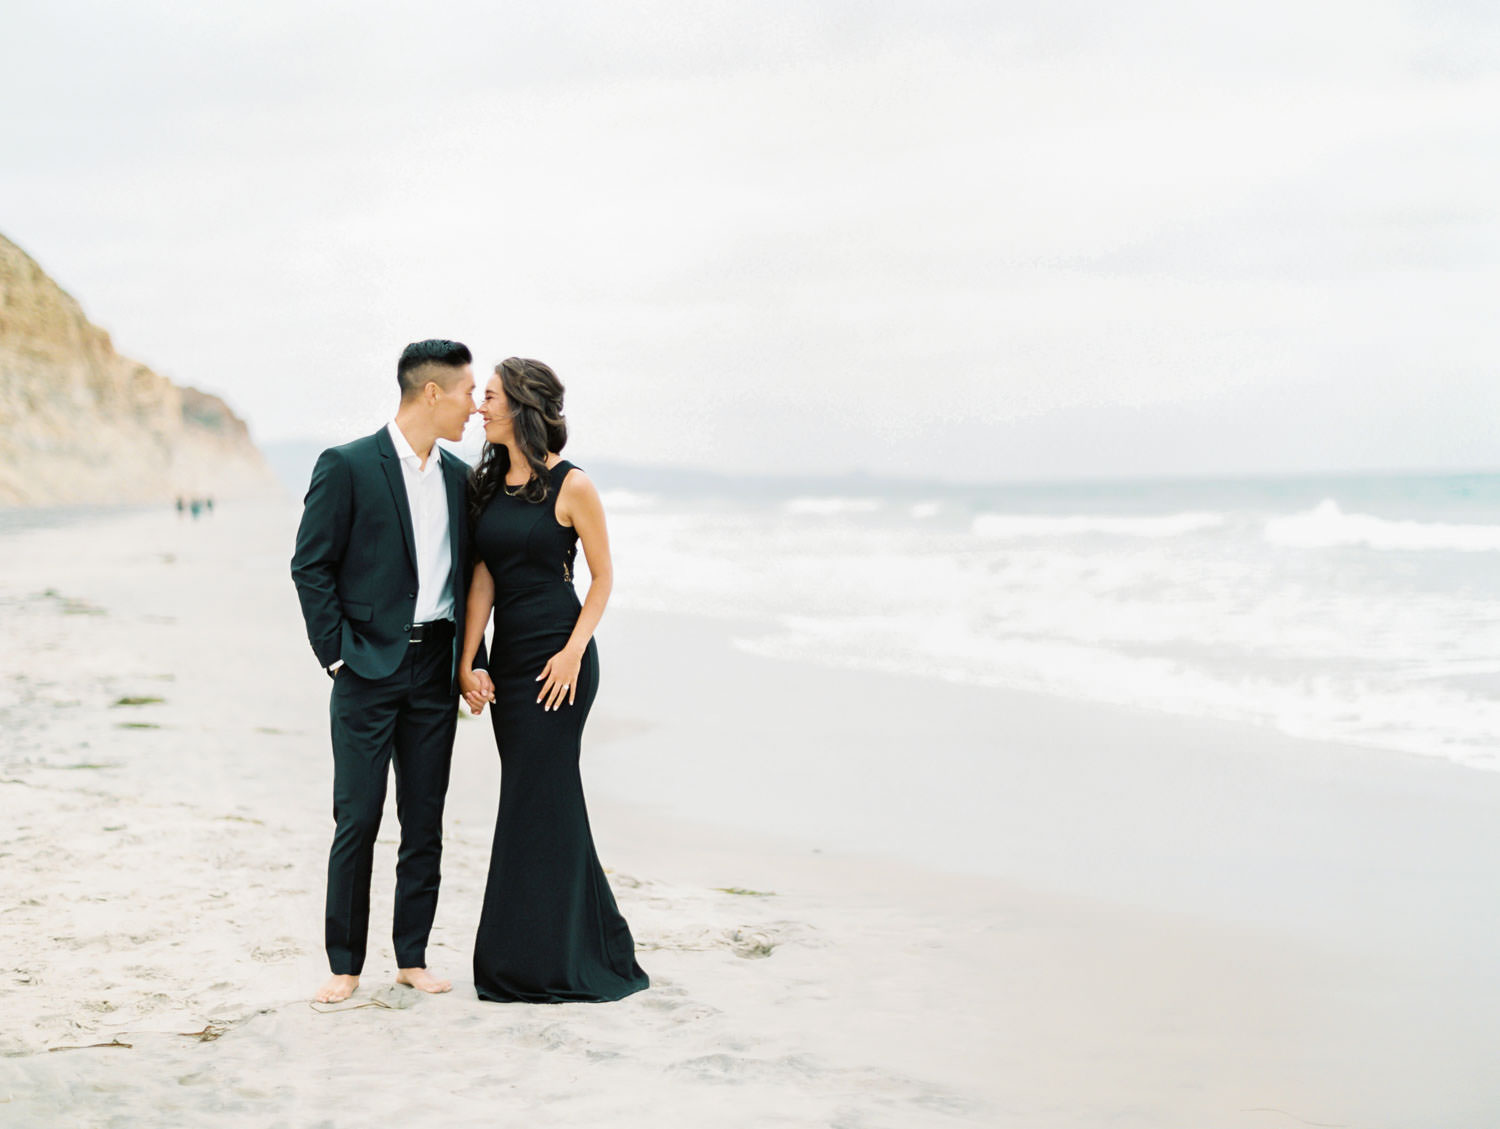 Groom rubbing noses with the bride. Engagement photo outfit ideas with a formal black suit and black dress. Torrey Pines beach photos on film by Cavin Elizabeth Photography.